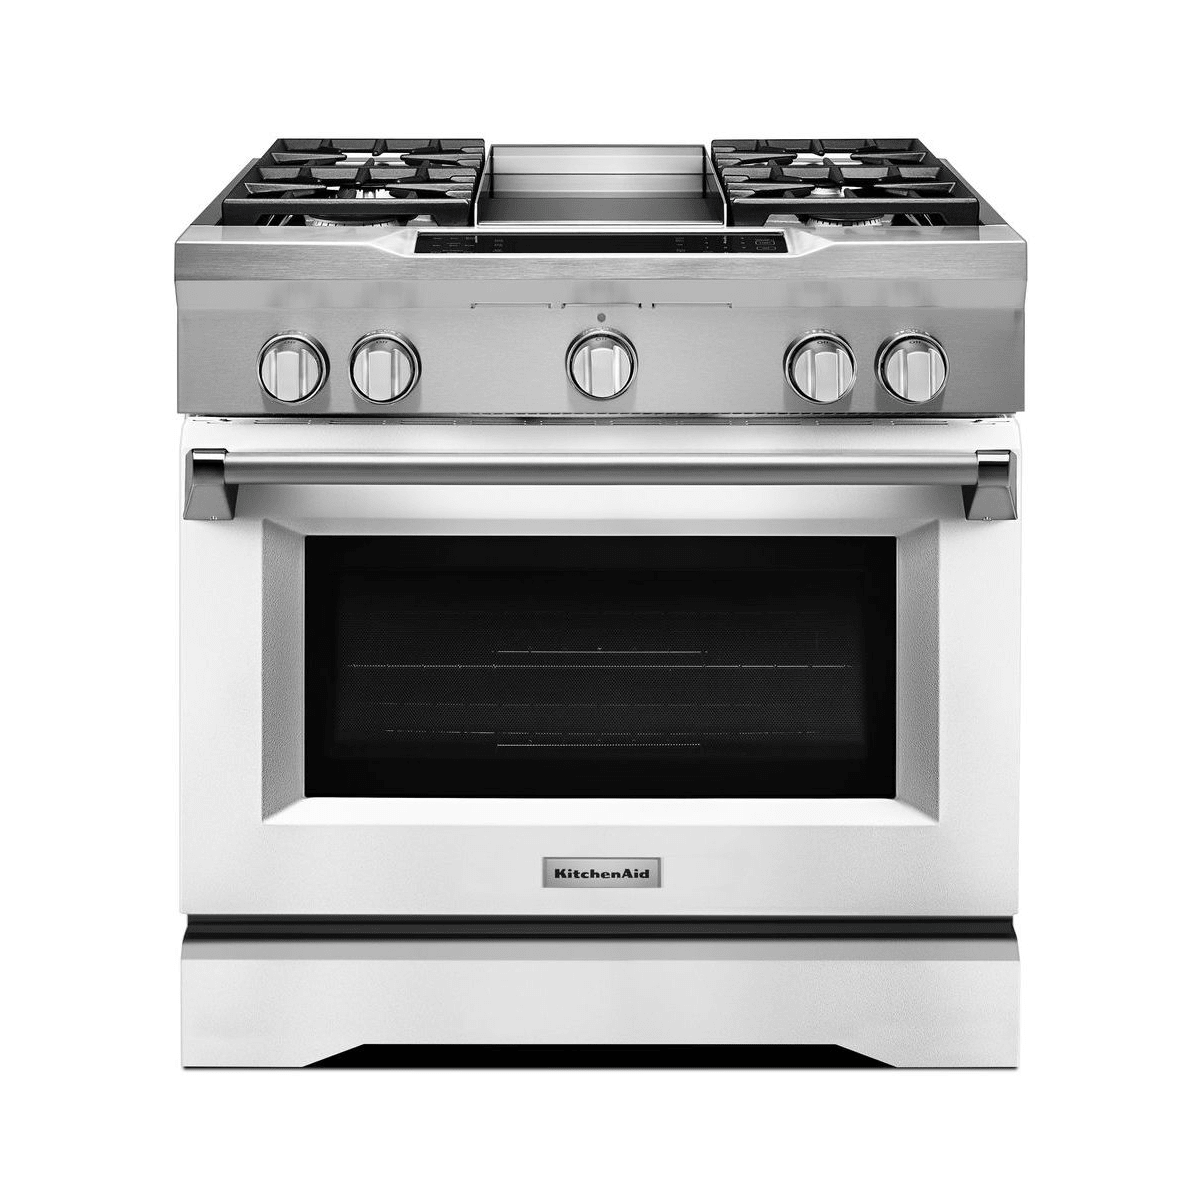 Kitchenaid Kdrs463vmw Imperial White 36 Inch Wide 5 1 Cu Ft Slide In Natural Gas Range With Griddle Dual Fuel Ranges Kitchen Aid Oven Cleaning